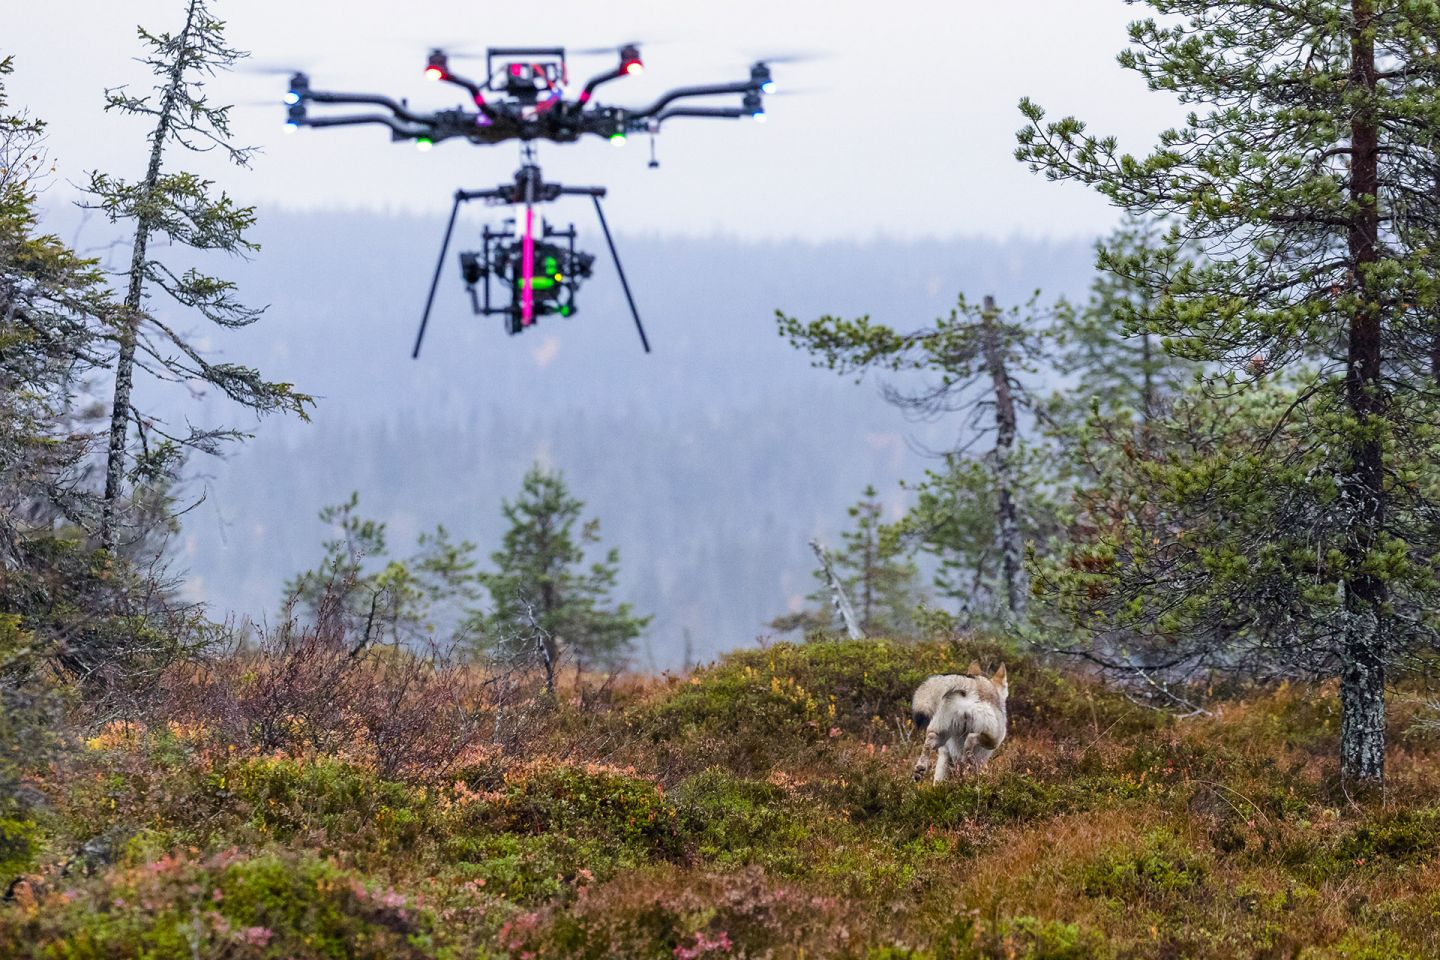 Drone filming a running wolf, during production of A Reindeer's Journey in Lapland